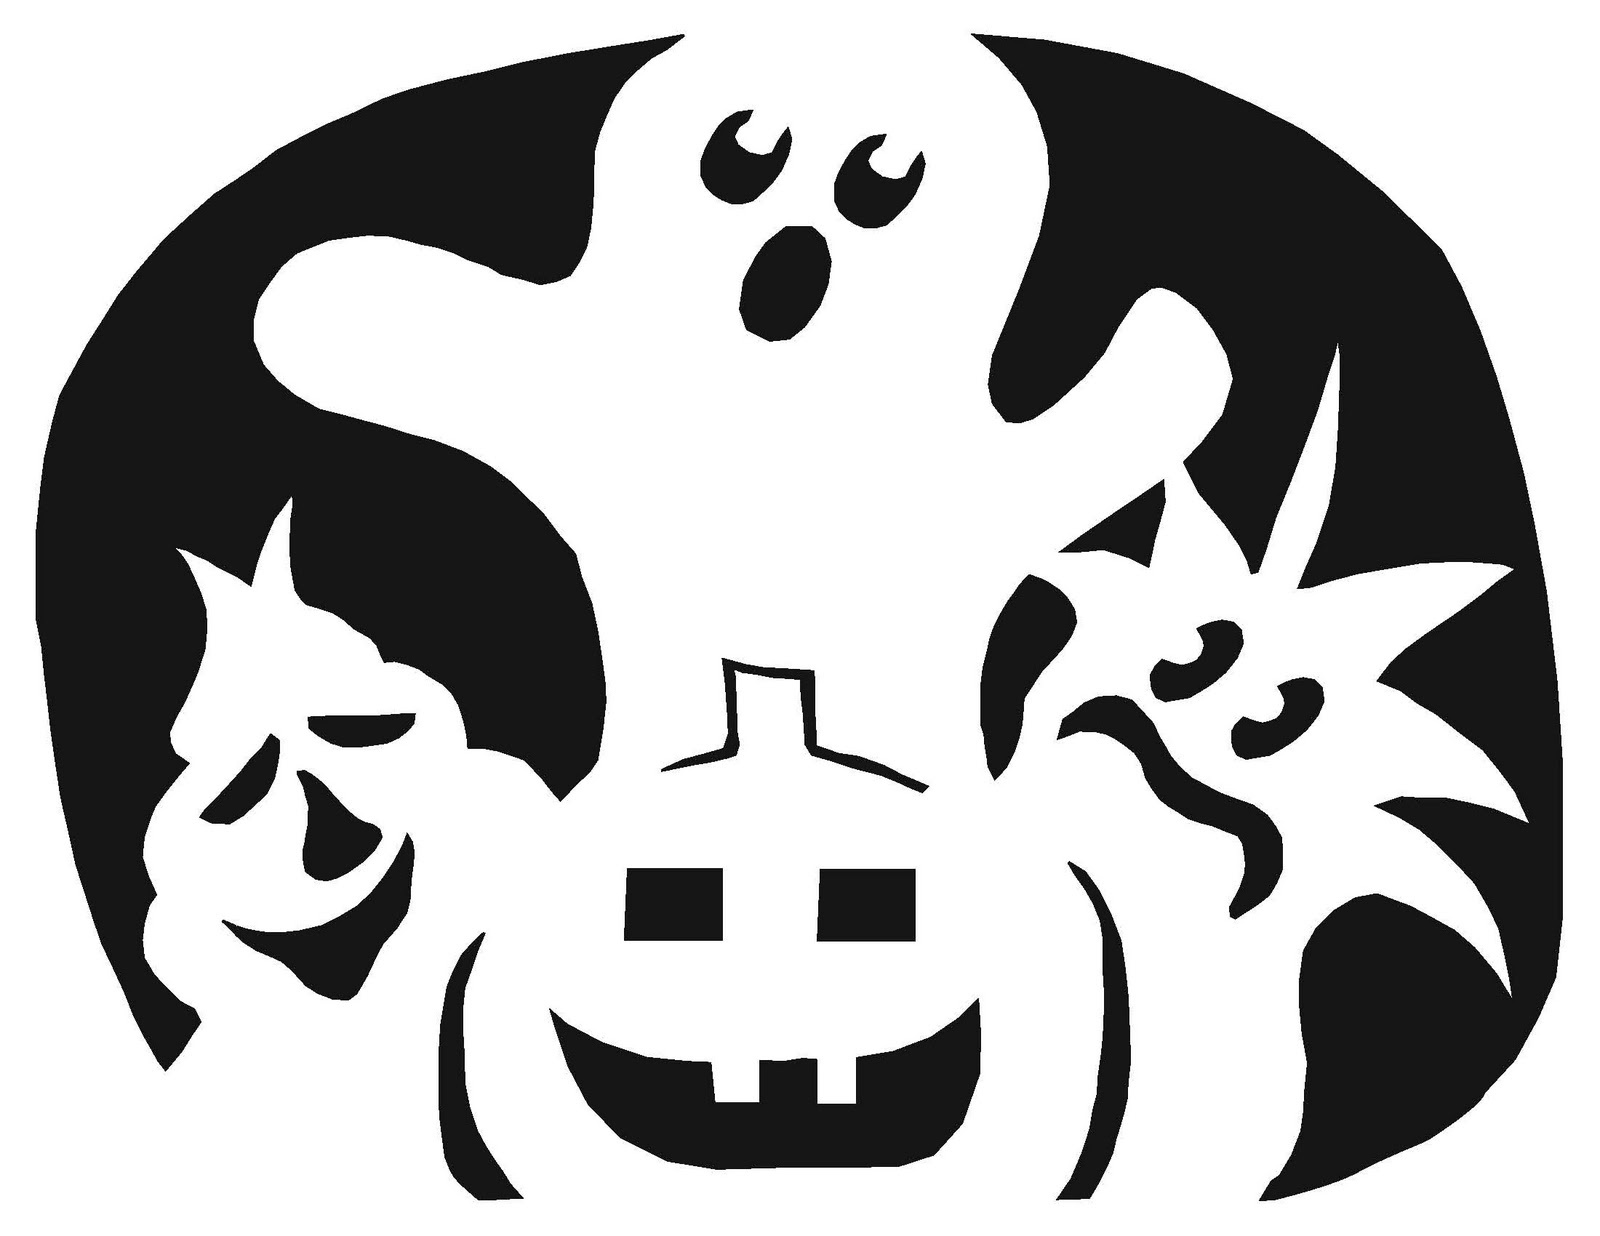 Free Guitar Pumpkin Stencil, Download Free Clip Art, Free Clip Art - Free Pumpkin Carving Templates Printable